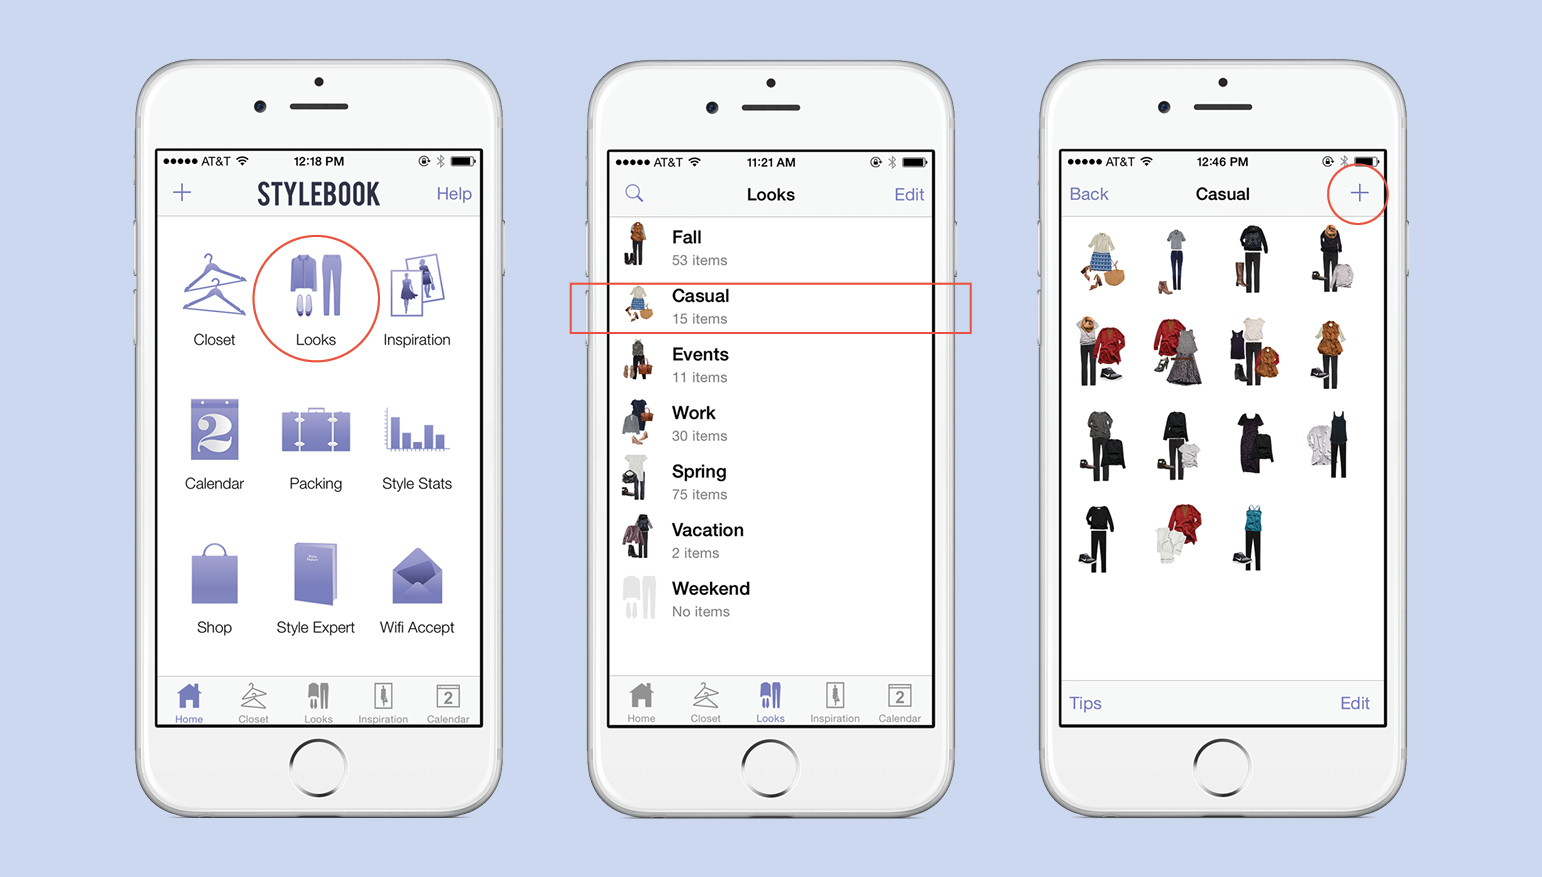 How To Create Outfits In Stylebook - How To Create An Outfit – Stylebook Tips